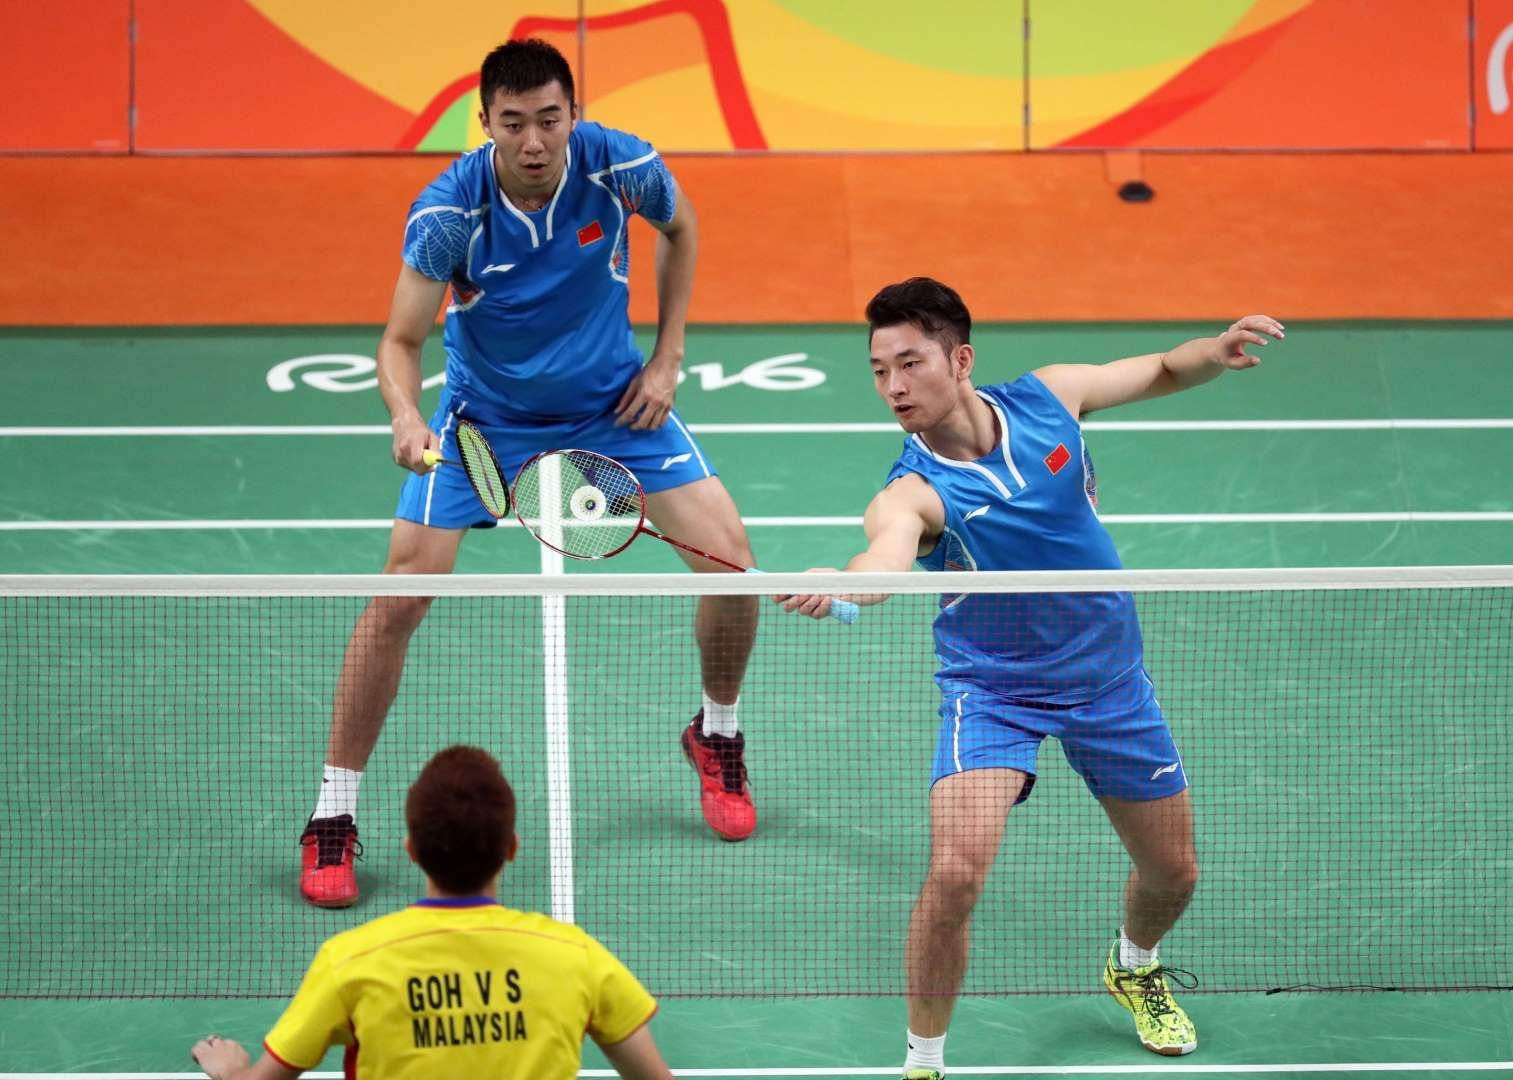 Biao Chai And Wei Hong Of China Compete Against V Shem Goh And Wee Kiong Tan Of Malaysia During The Men S Badminton Dou Rio Olympics Olympics Badminton Doubles